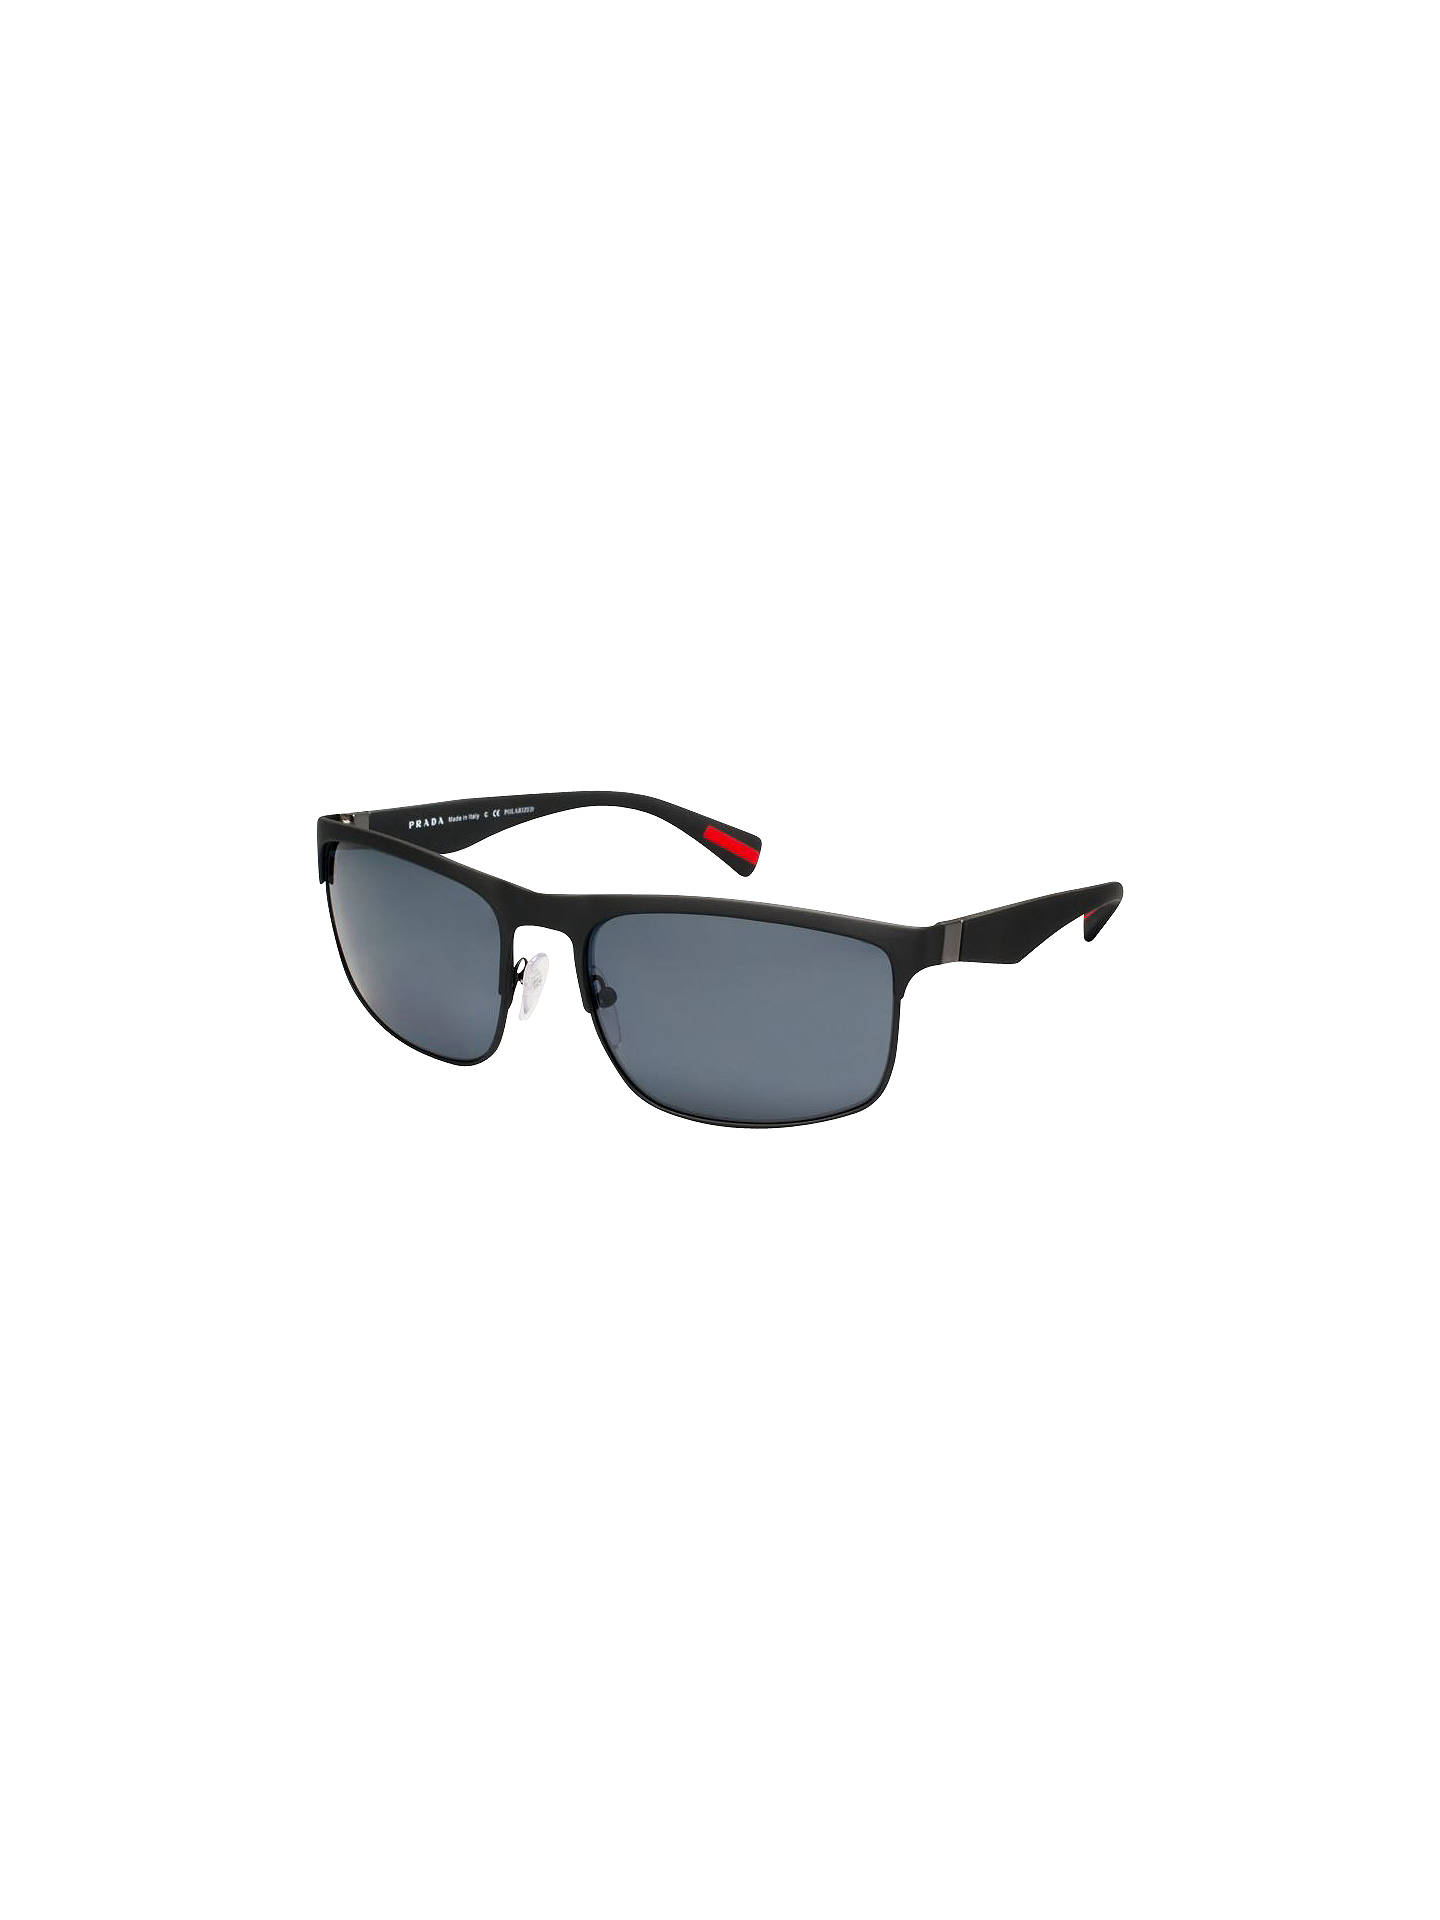 3fc148ee52d01 Prada Linea Rossa PS 56PS Polarised Rectangular Frame Sunglasses ...